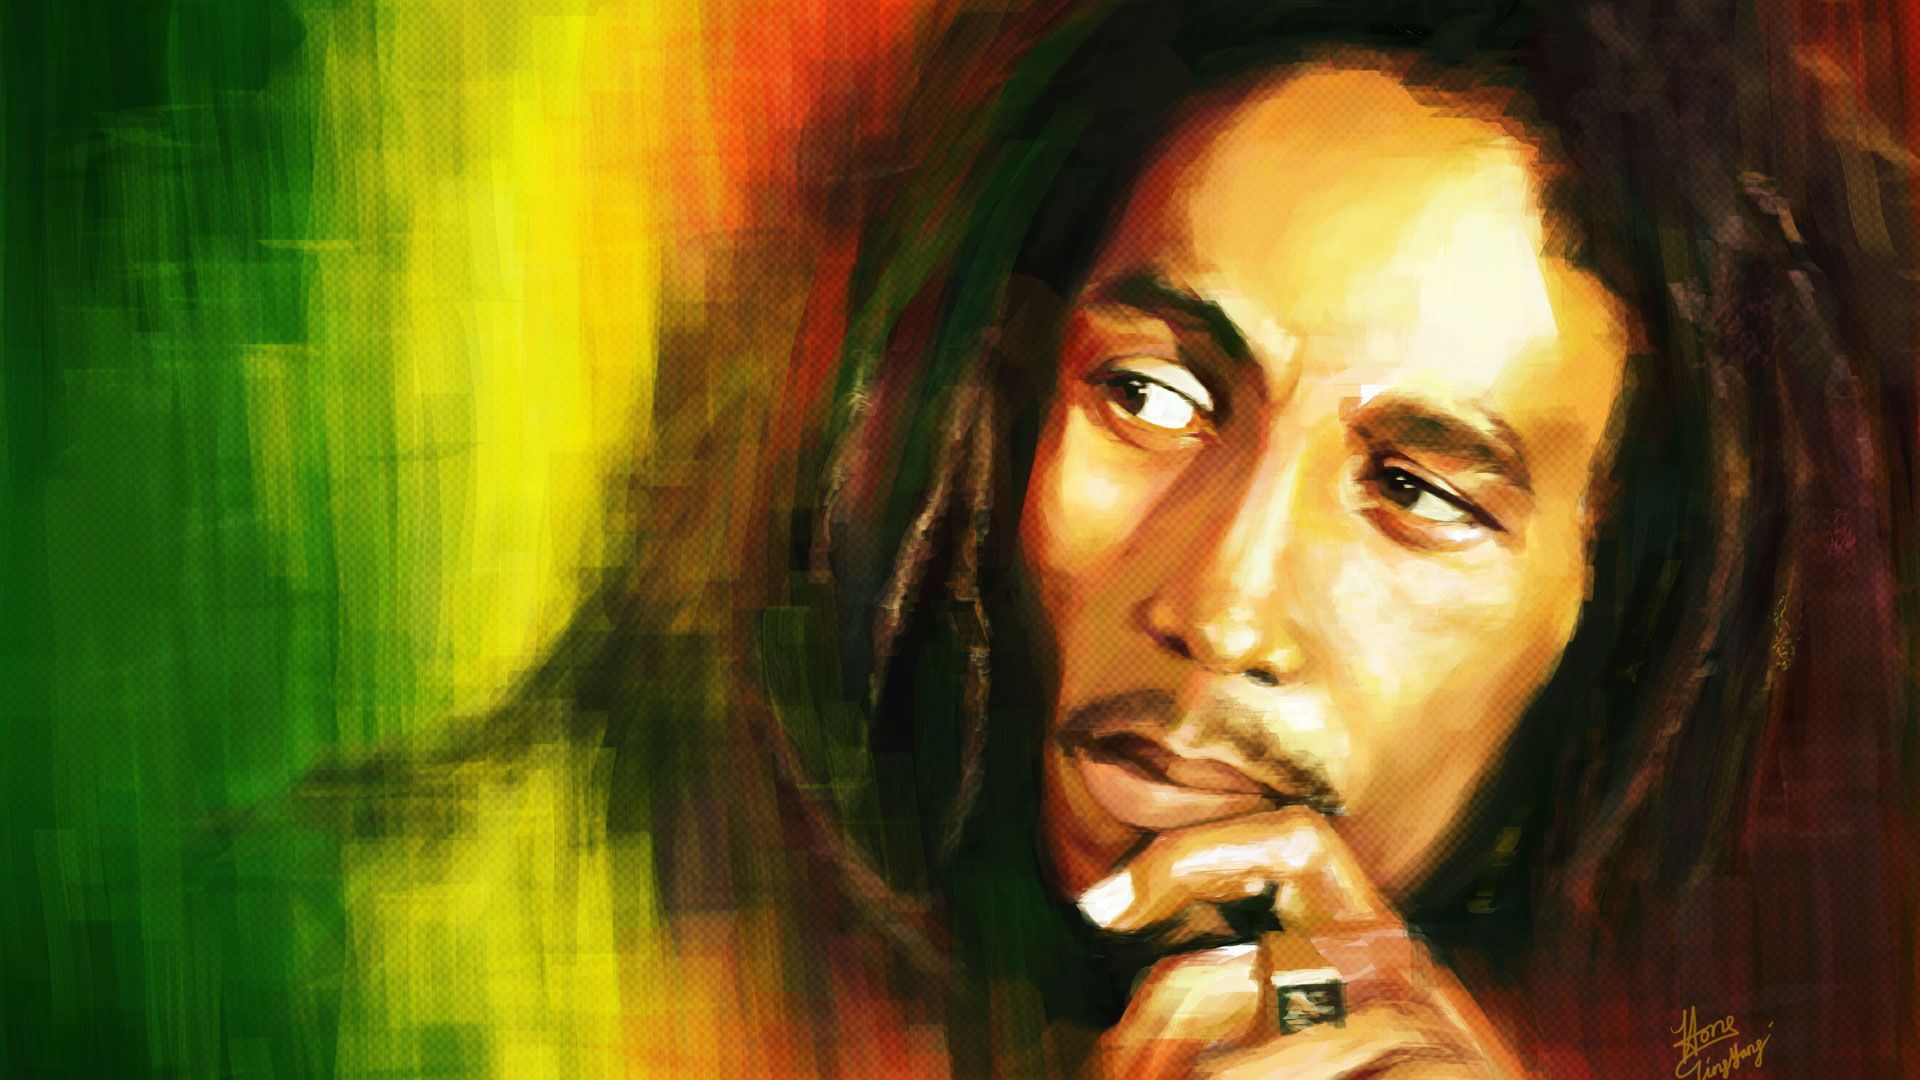 best images about bob marley the great bobs 17 best images about bob marley the great bobs typography and cannabis